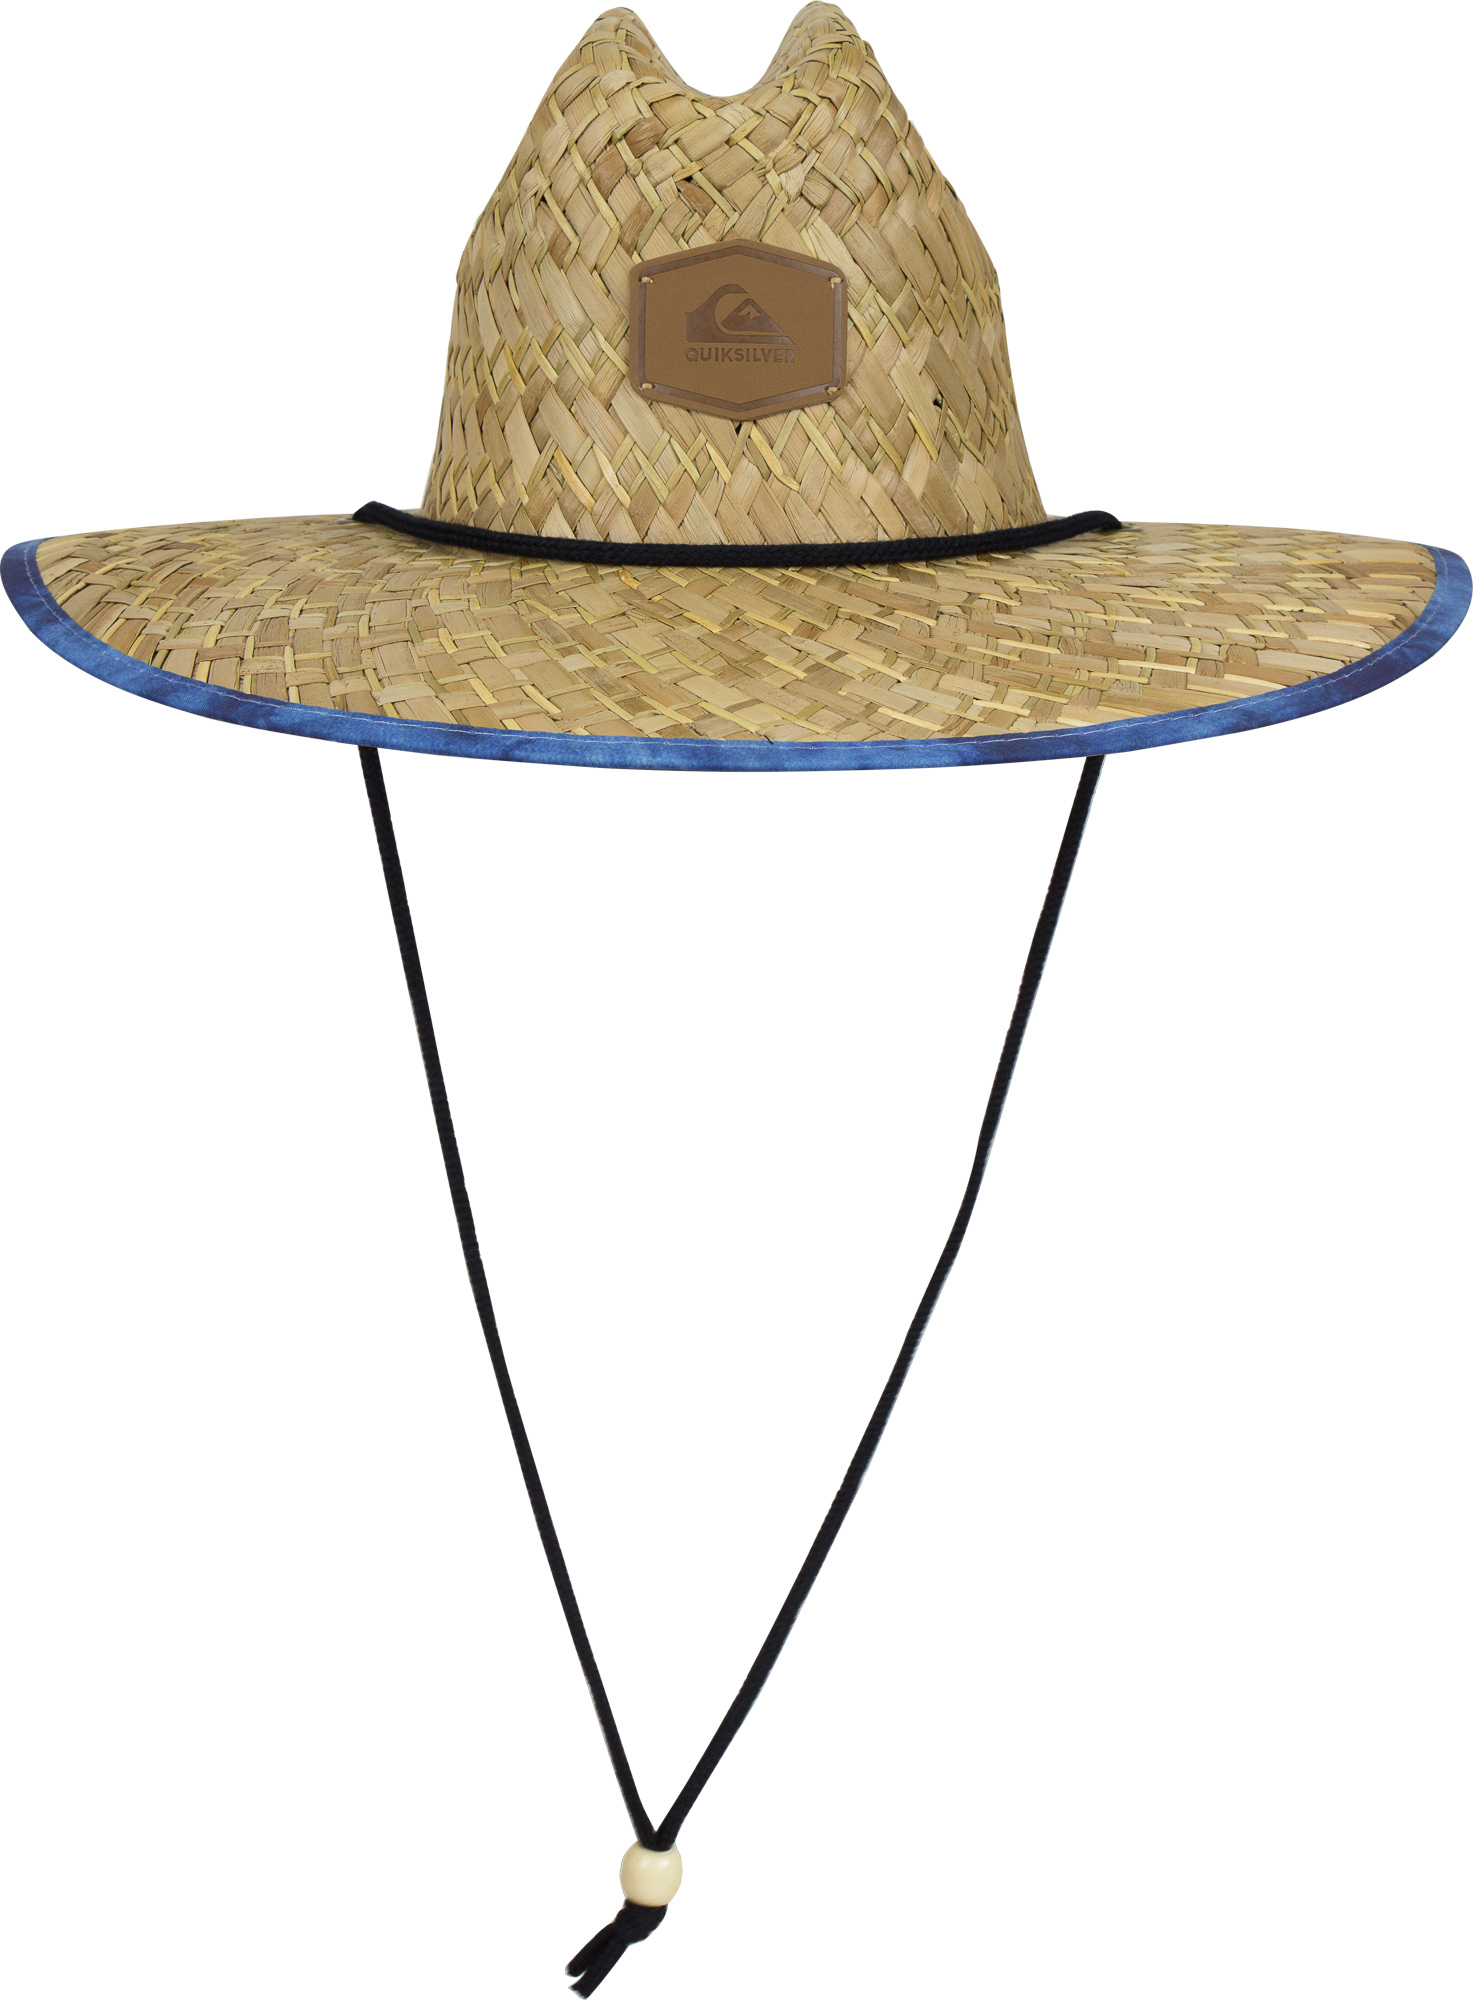 dce4f0ca Details about Quiksilver Mens Outsider Lifeguard Hat - Straw Brown/Blue -  Small/Medium